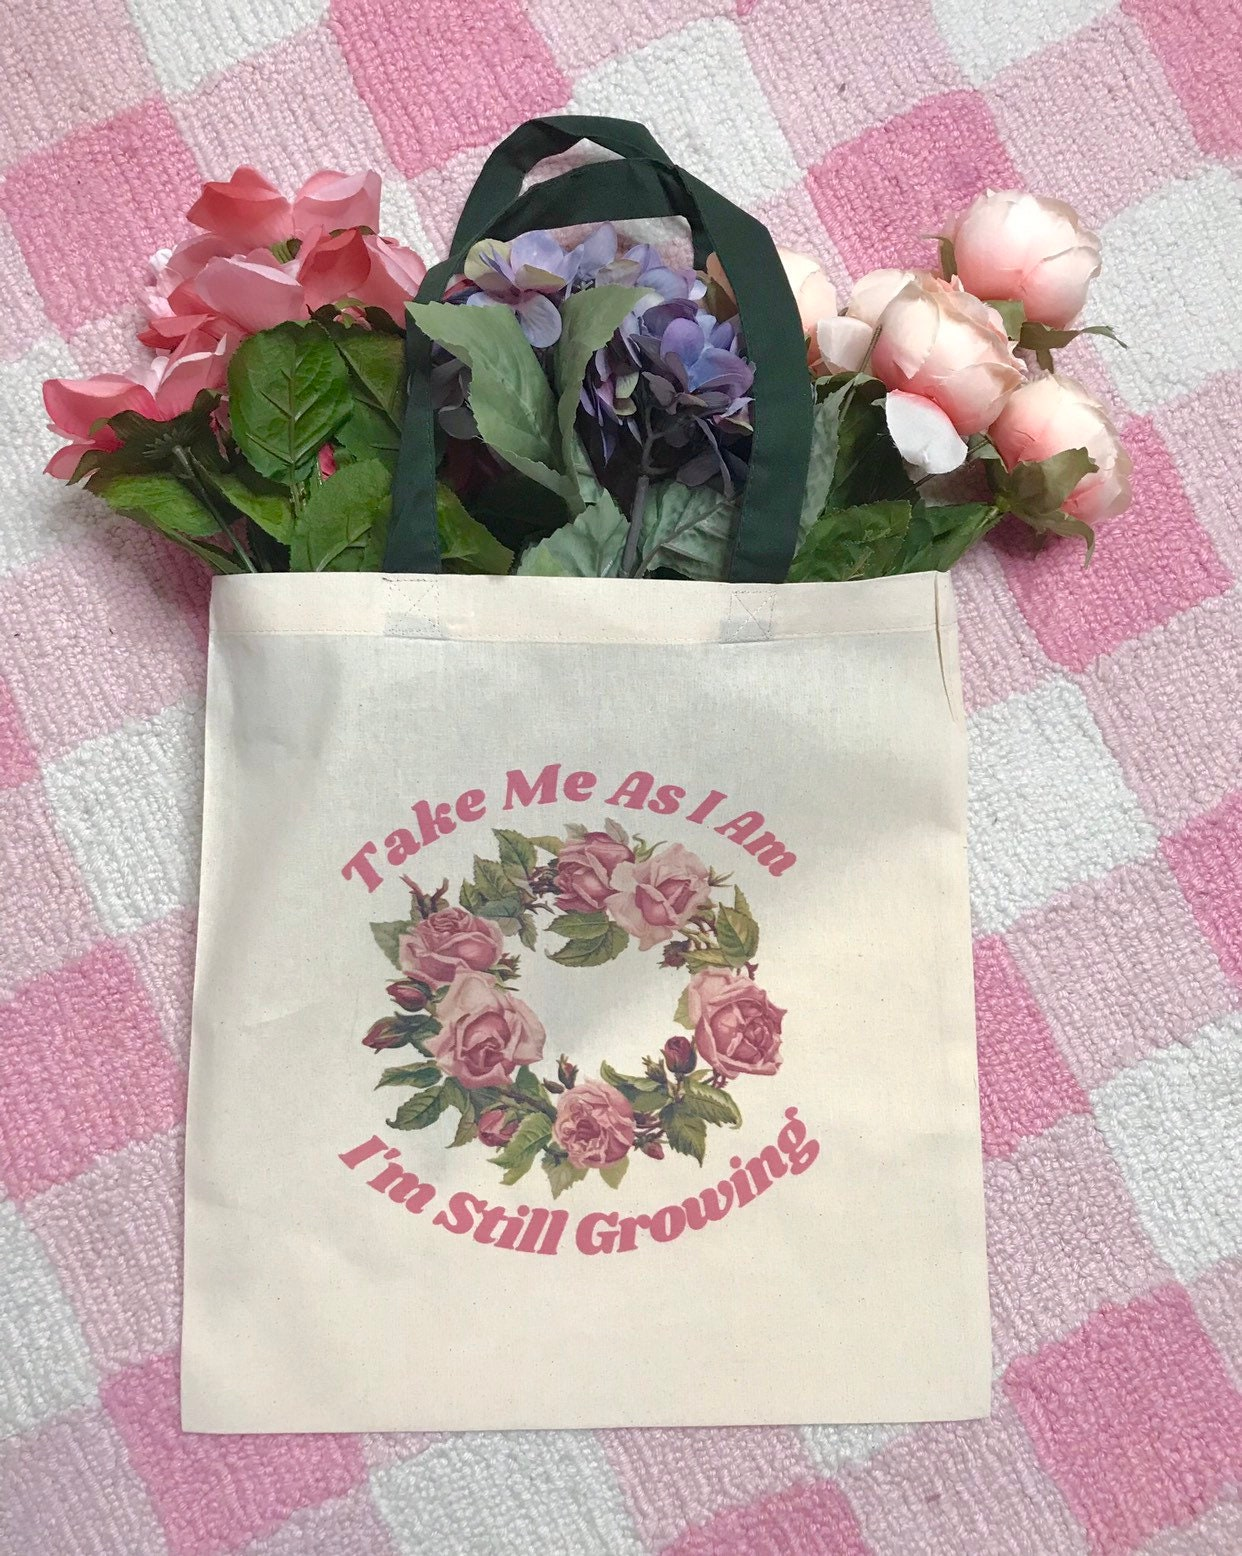 I M Still Growing Tote Bag Vintage Imagery Cute Pink Etsy